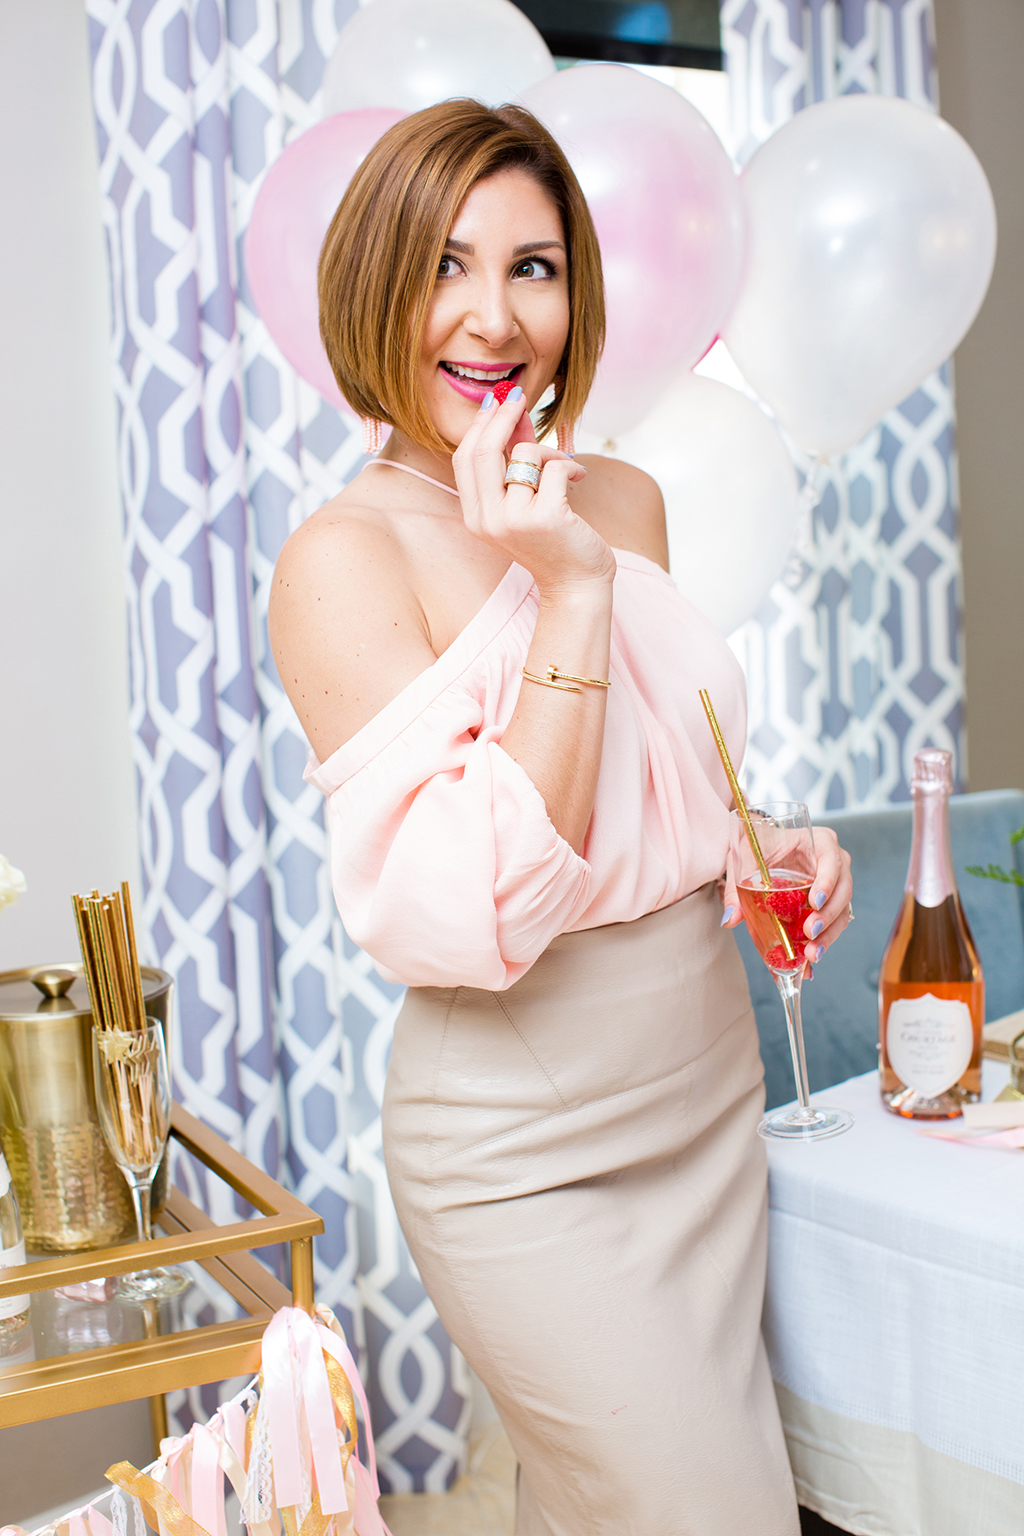 Blame-it-on-Mei-Miami-Fashion-Blogger-2017-Valentines-Day-Look-Galentines-Cocktails-Party-with-Le-Grand-Courtage-Champagne-Pink-Halter-Off-The-shoulder-Top-Faux-Leather-Skirt-Gold-Sandals-Short-Hair